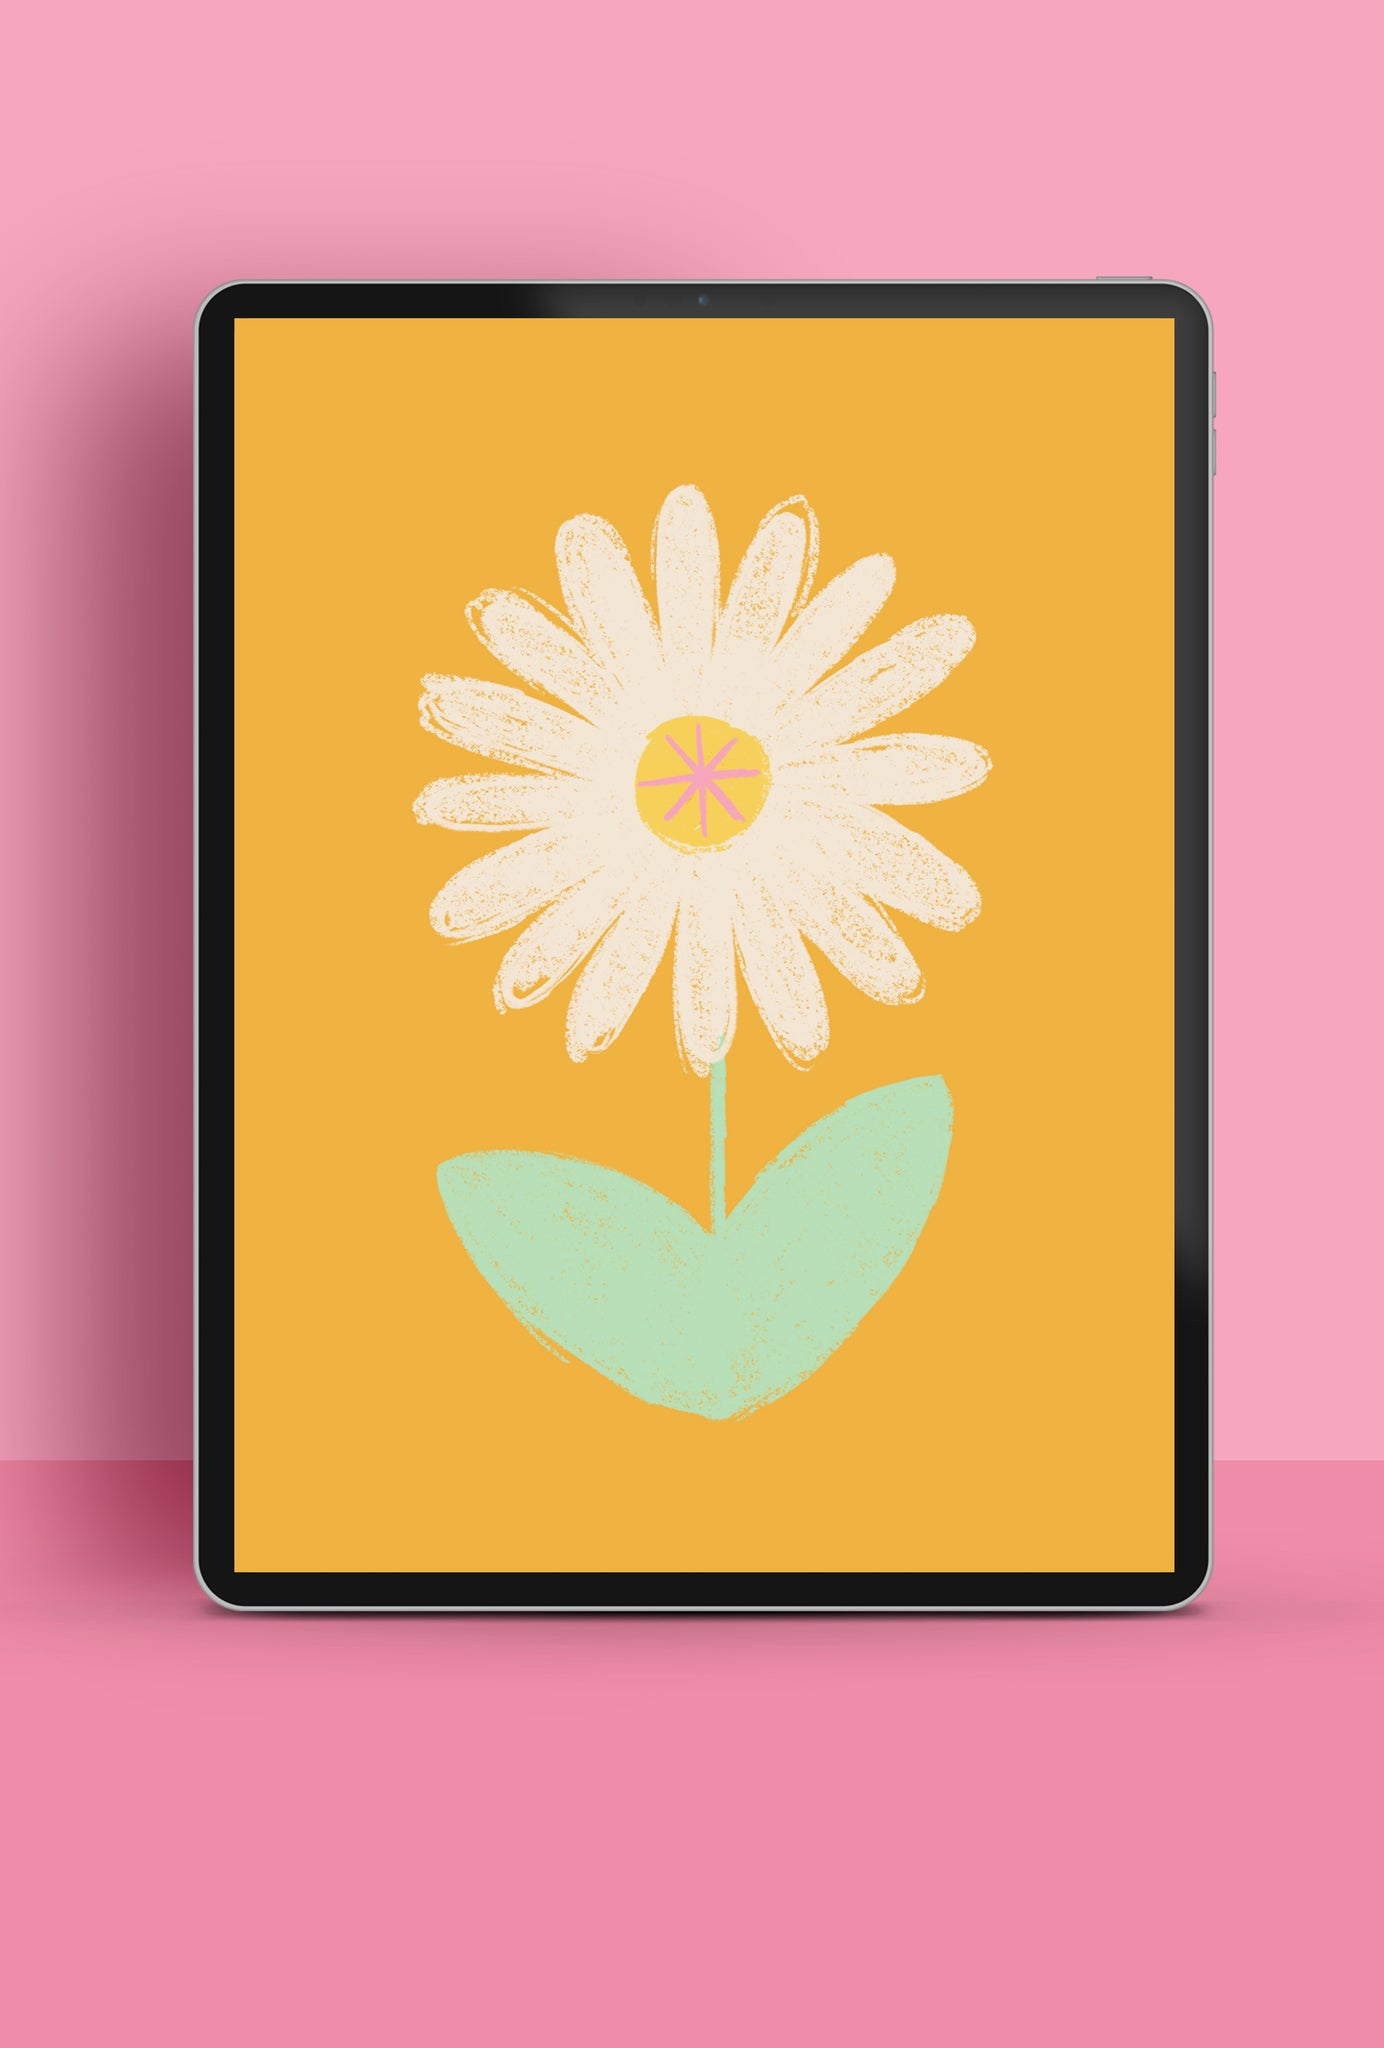 colourful illustrated daisy with mustard background tablet wallpaper